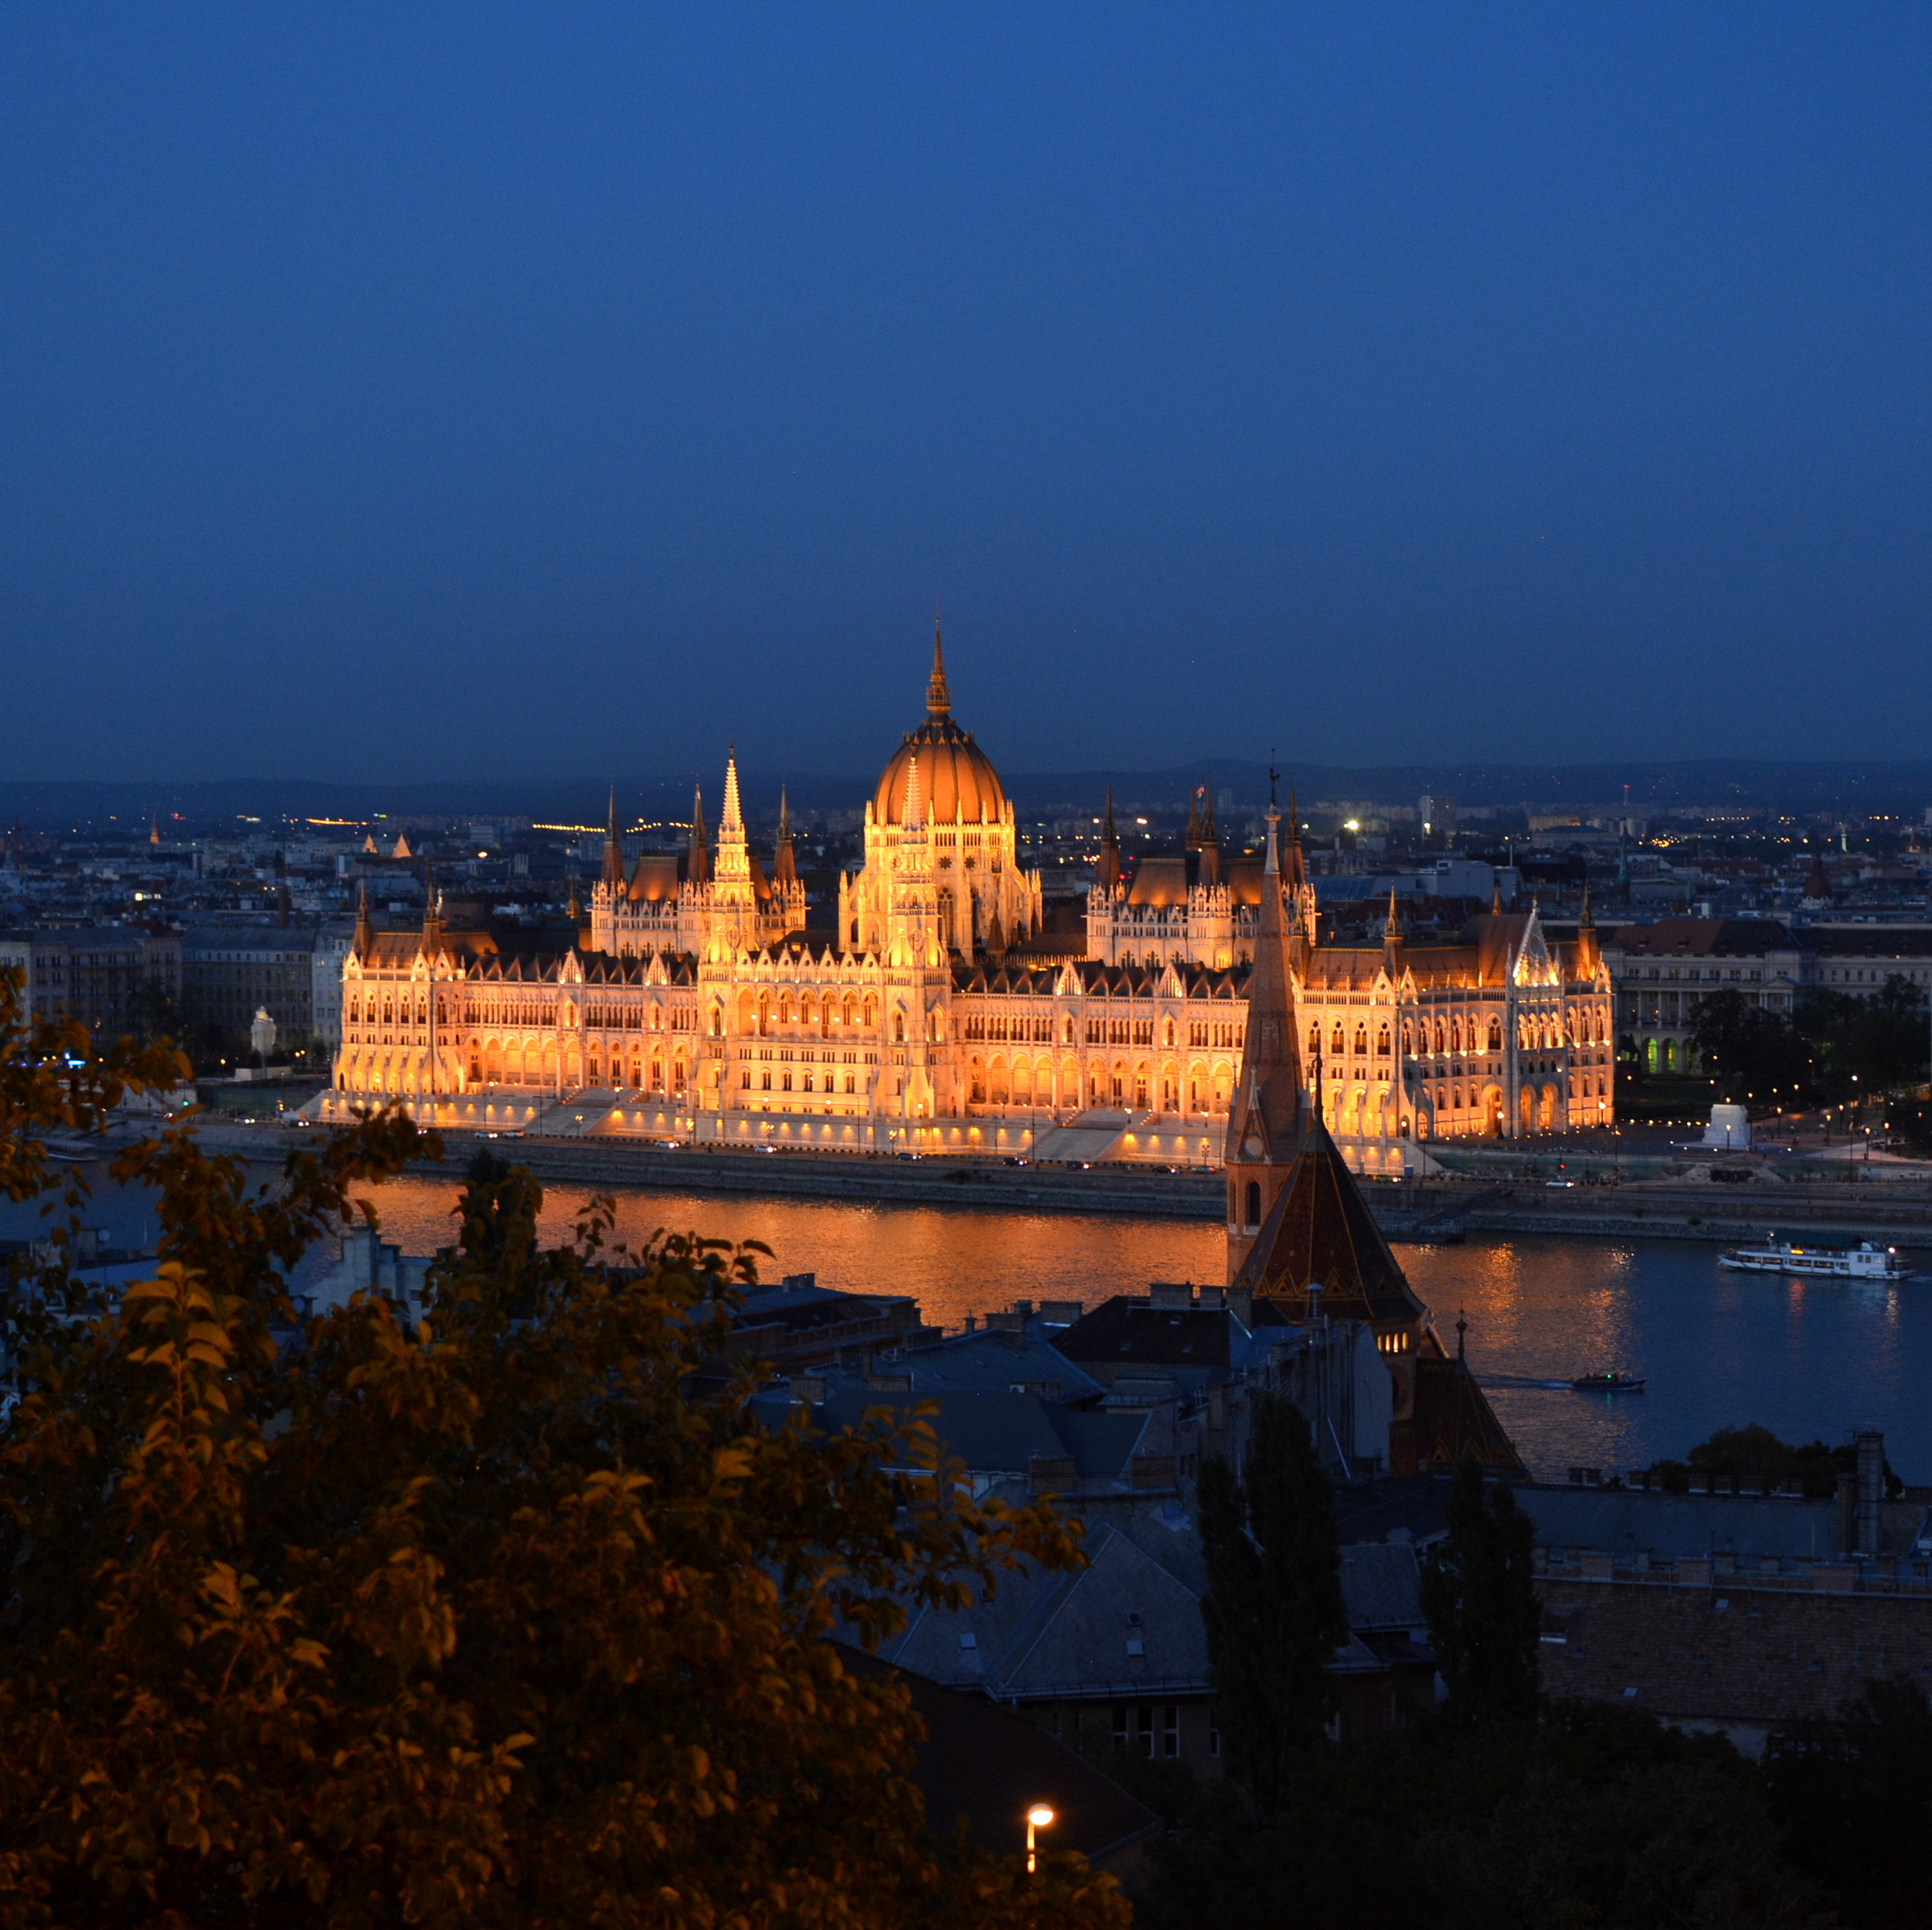 The Hungarian Parliament building lit at night along the banks of the Danube.